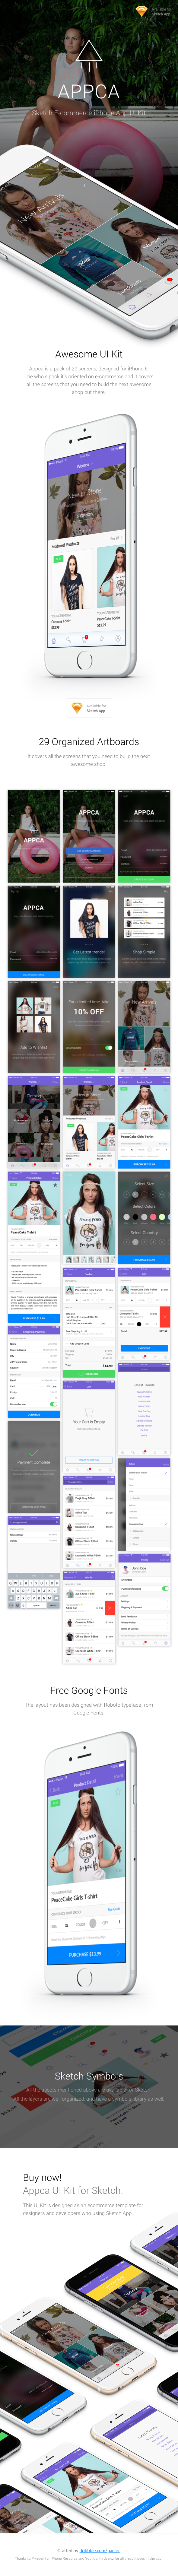 Appca - Ecommerce UI Kit for Sketch App - Sketch Templates